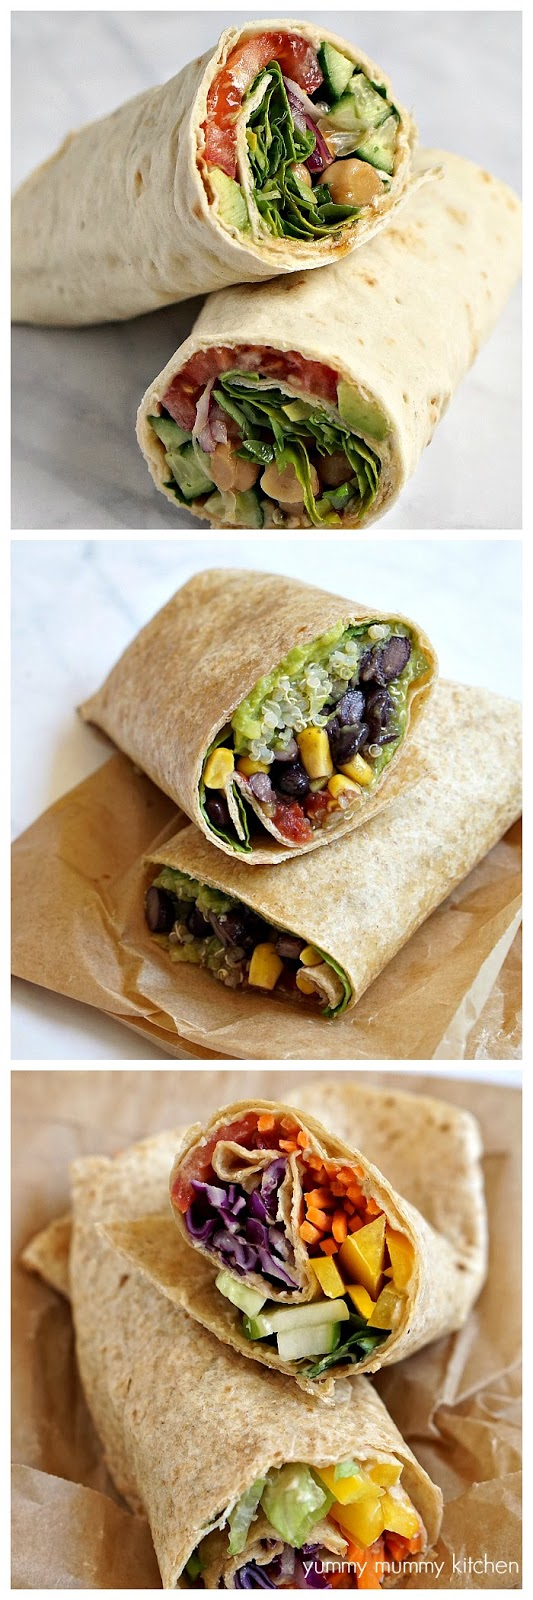 These vegetarian and vegan tortilla or lavash wrap recipes are perfect for packed lunches.